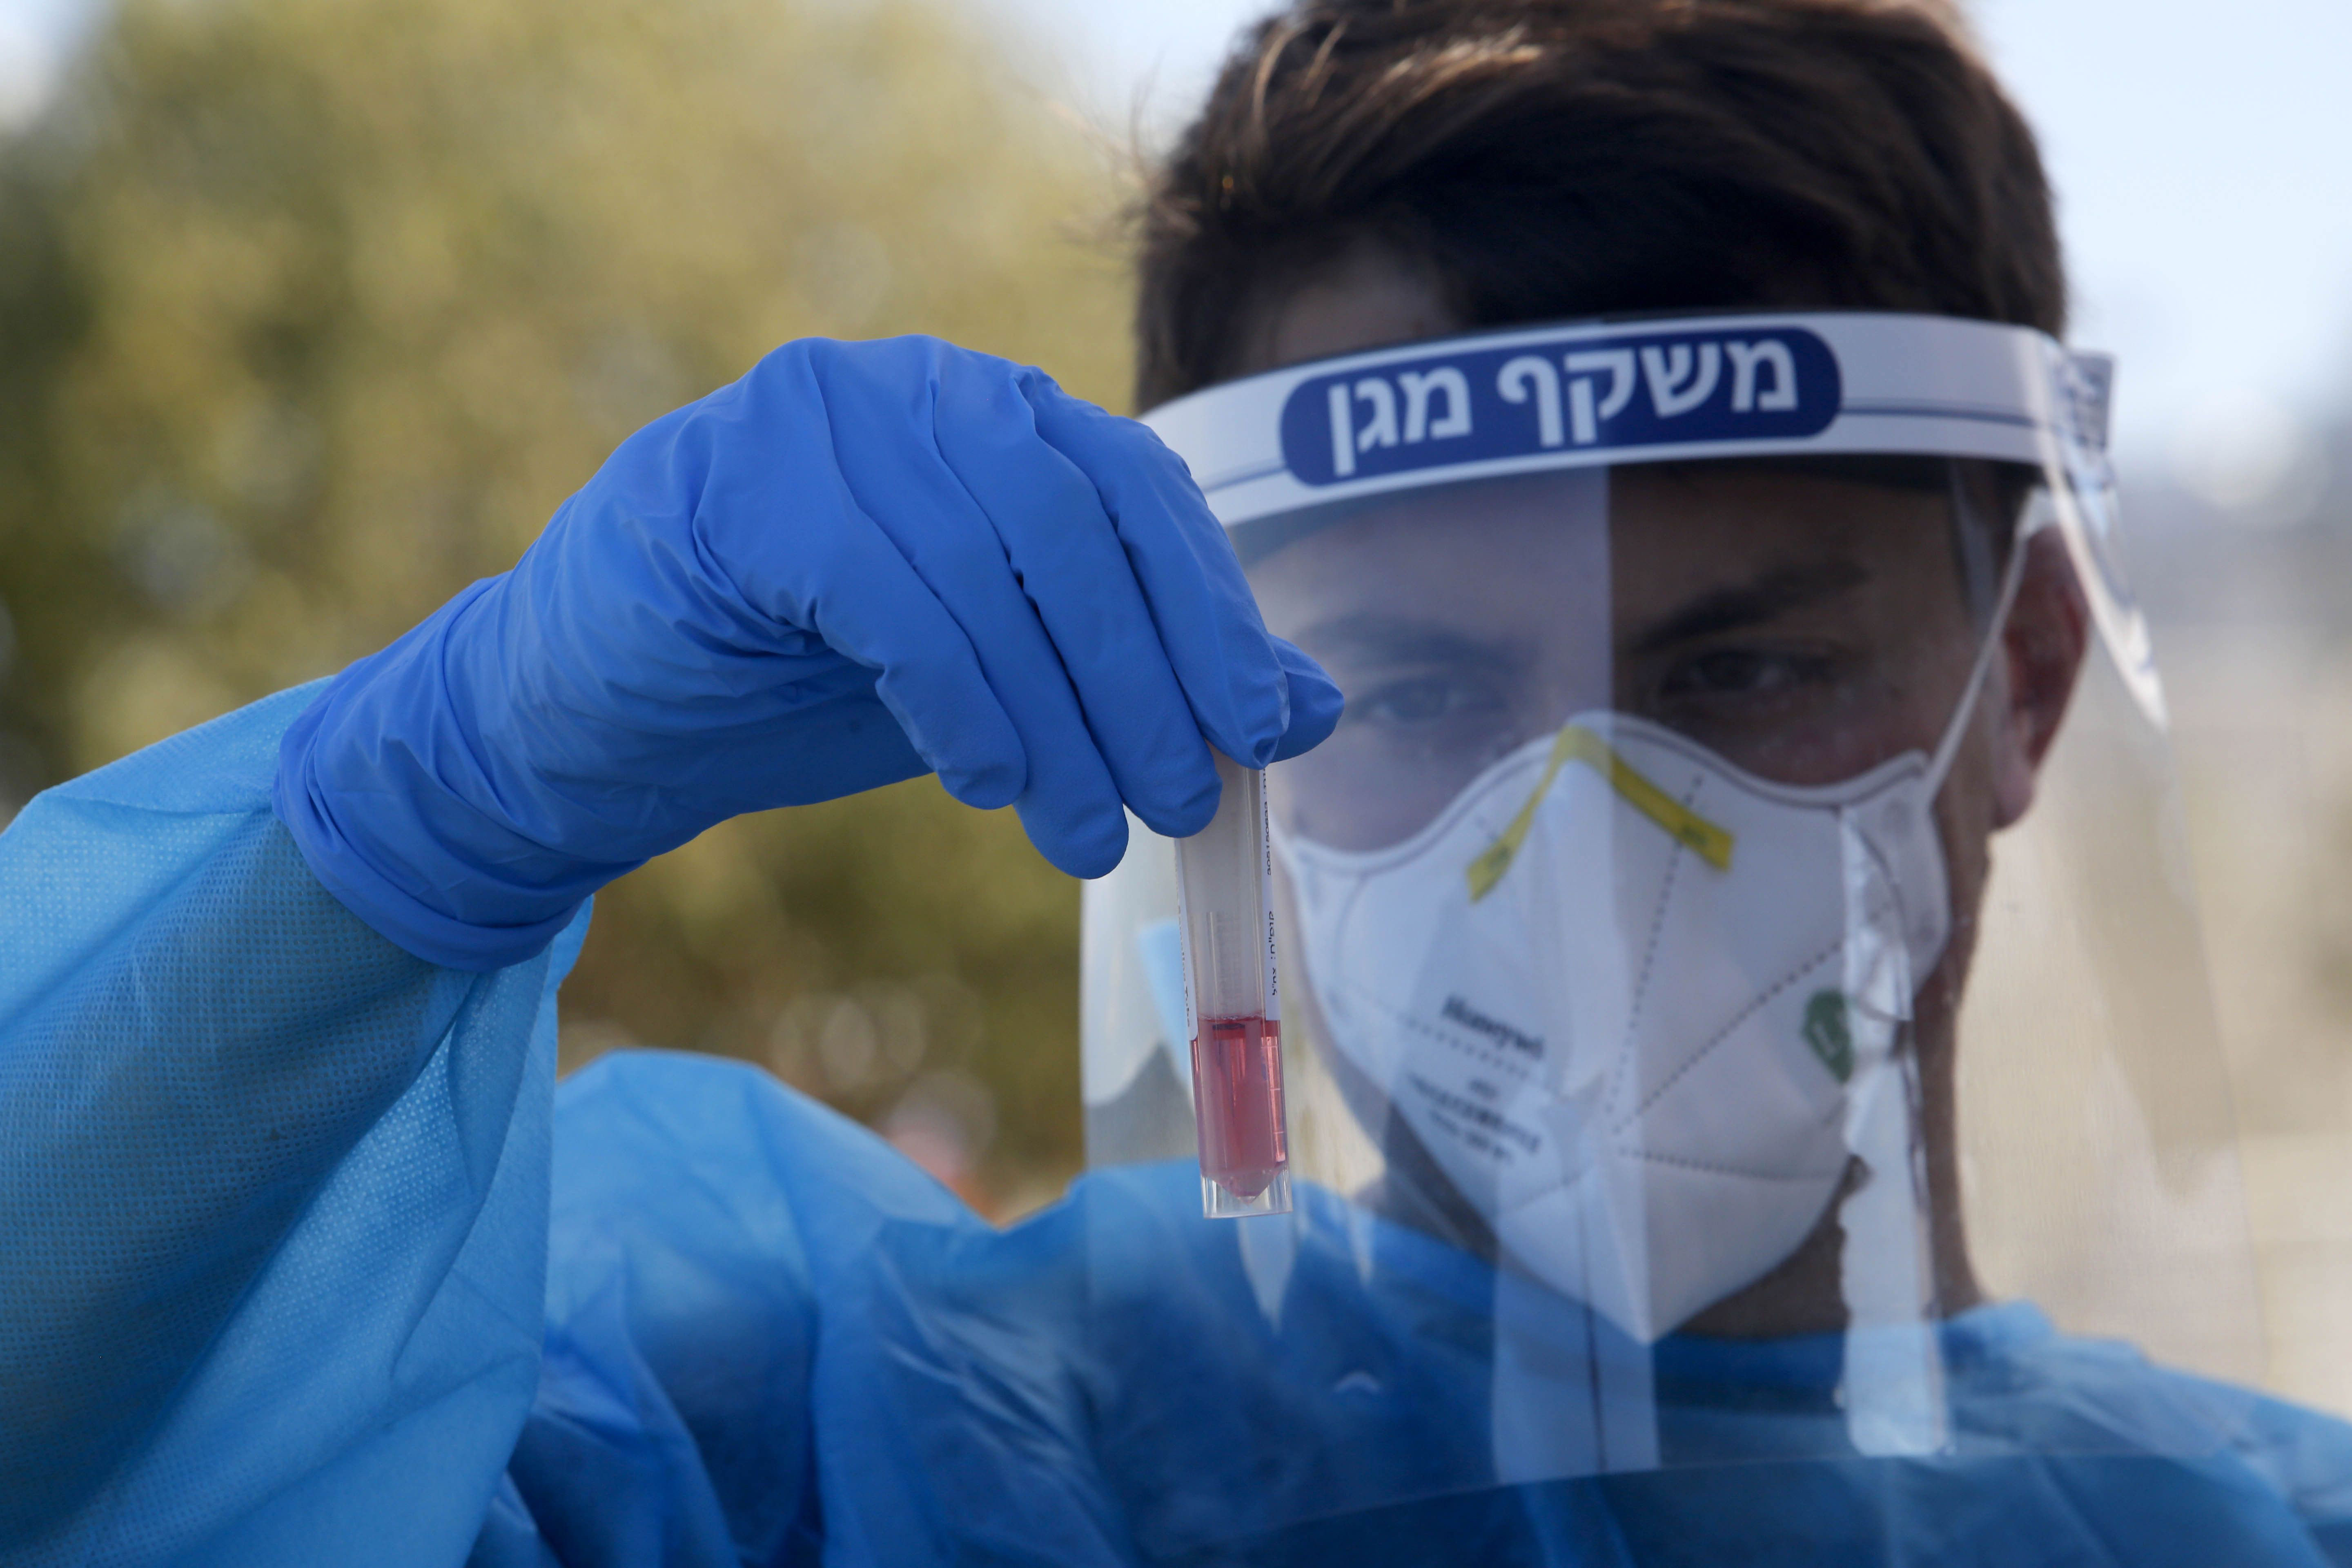 A medical worker holds a Covid-19 test sample in Petah Tikva, Israel, in October 2020.